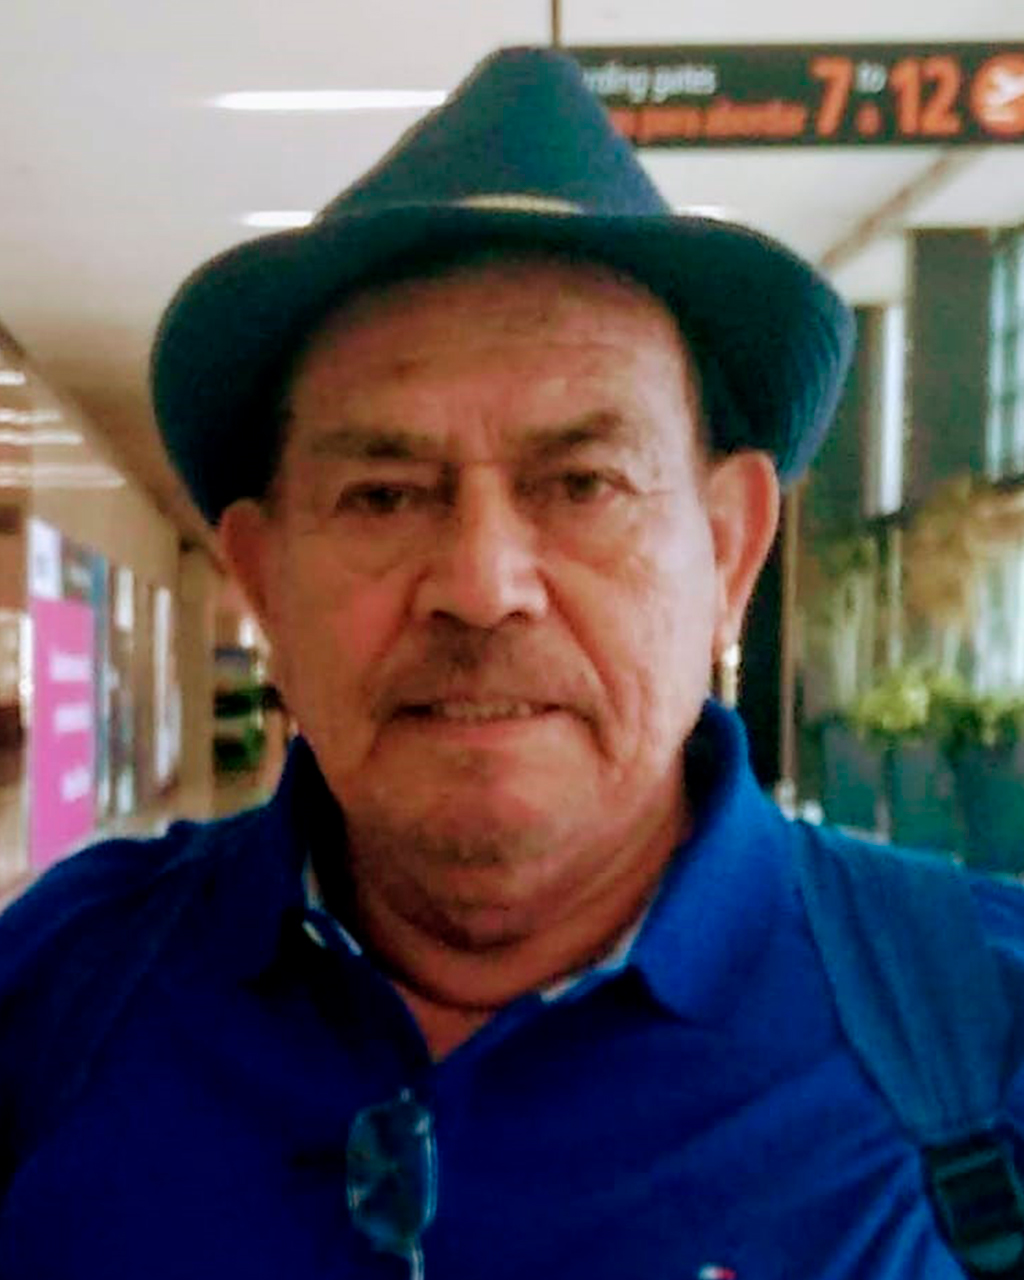 <h3><strong>Mario Guadalupe Fernández Caro</strong></h3> <p></p>